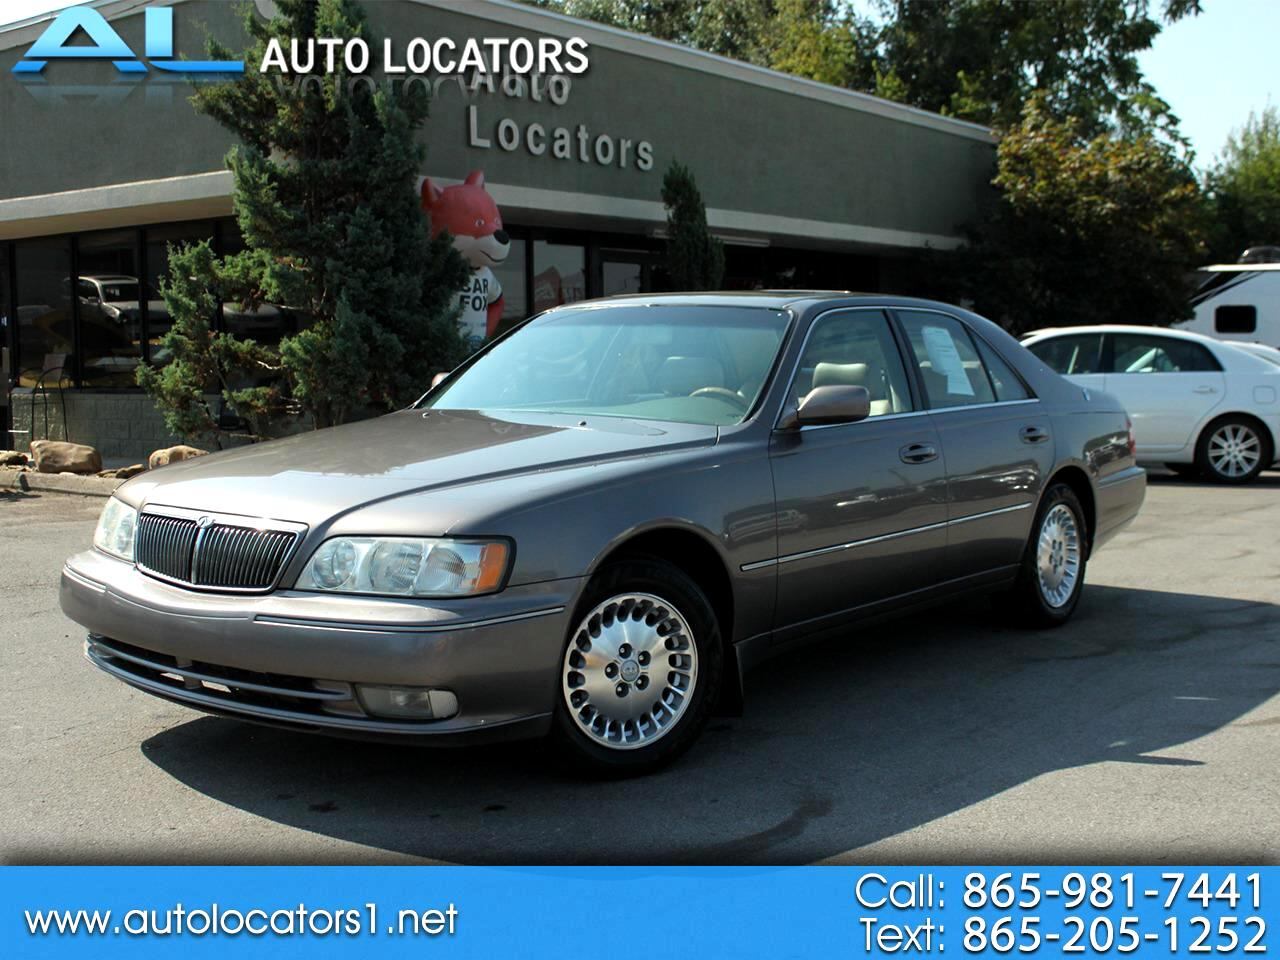 Infiniti Q45 Luxury Performance Sdn 2002